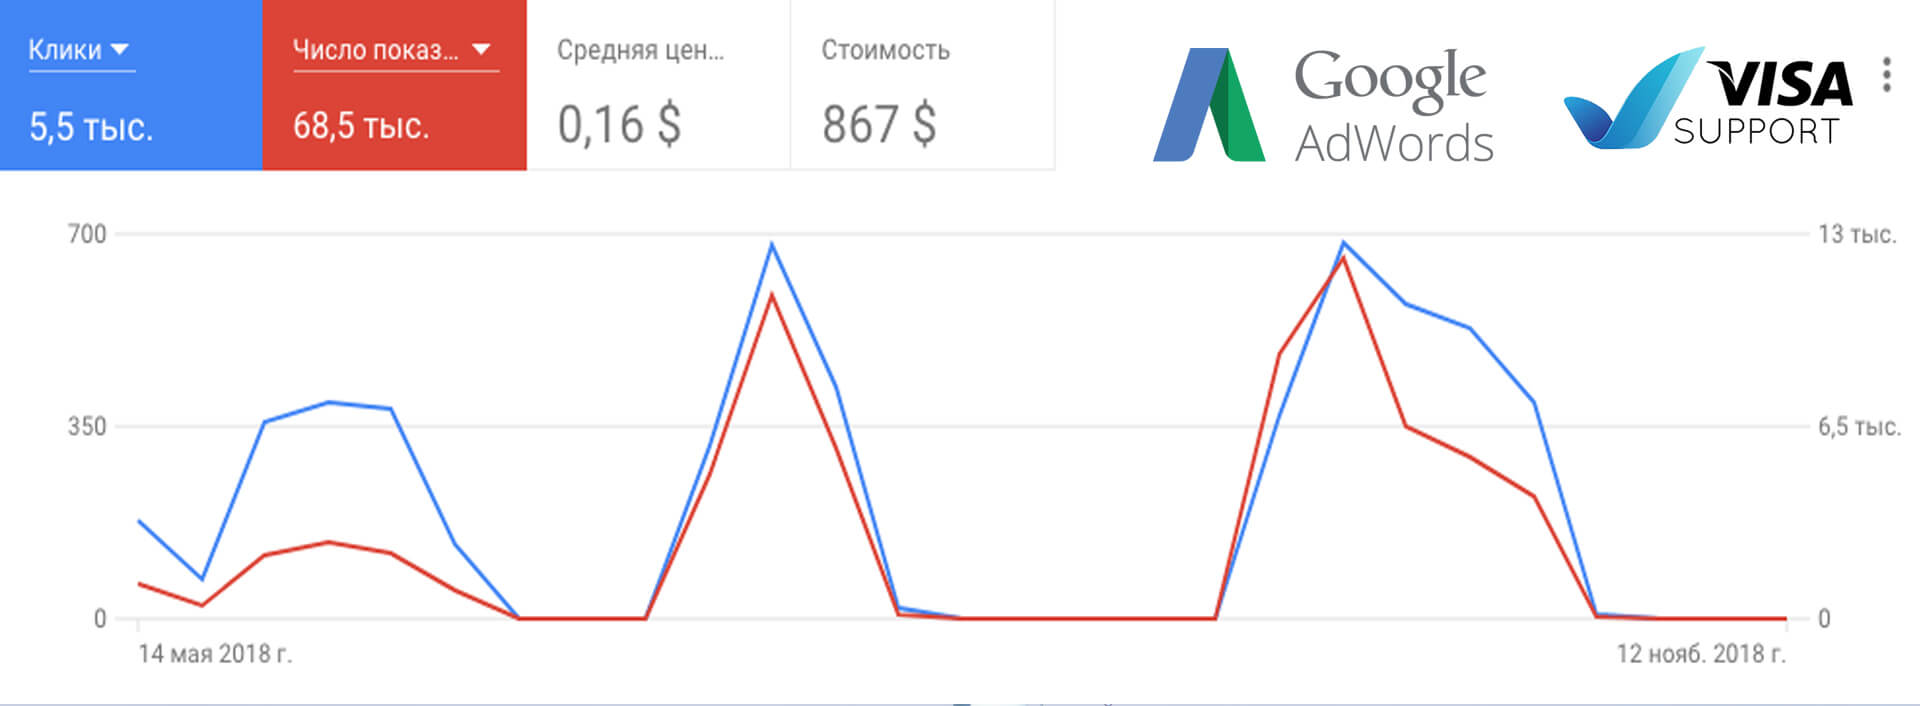 Visa Support - Google Adwords